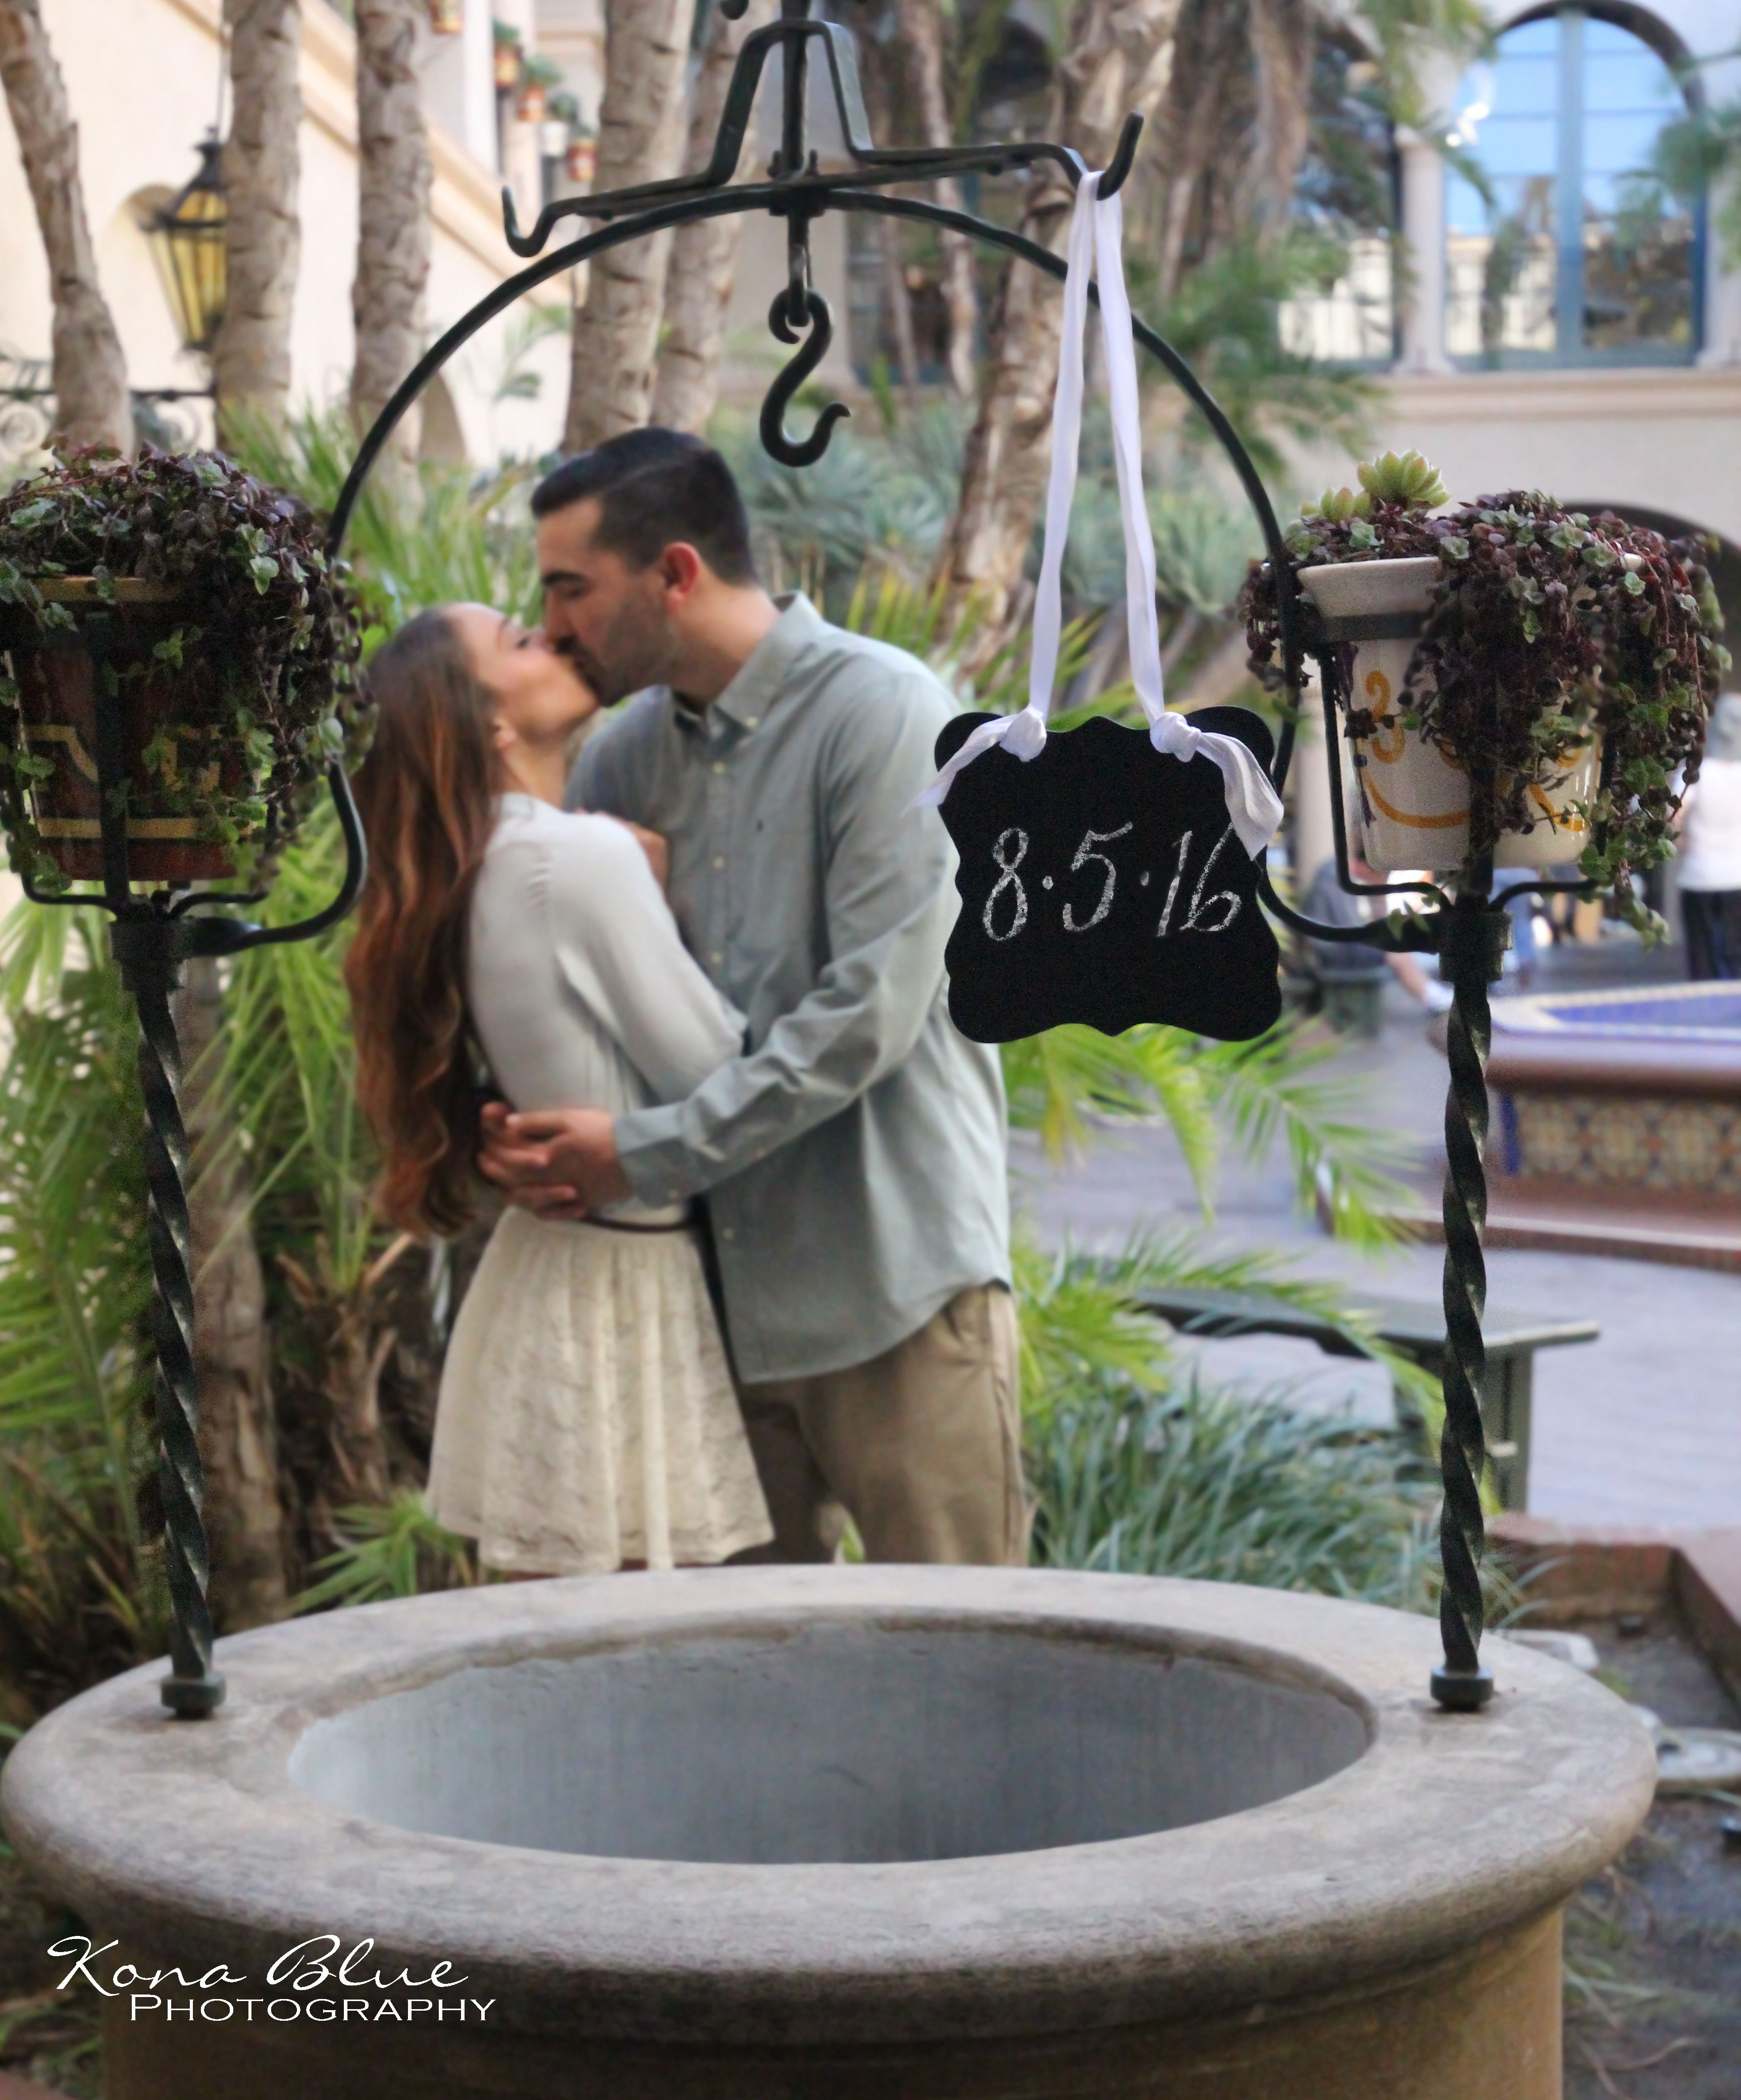 Engagement Save the Date photography ideas in Balboa Park San